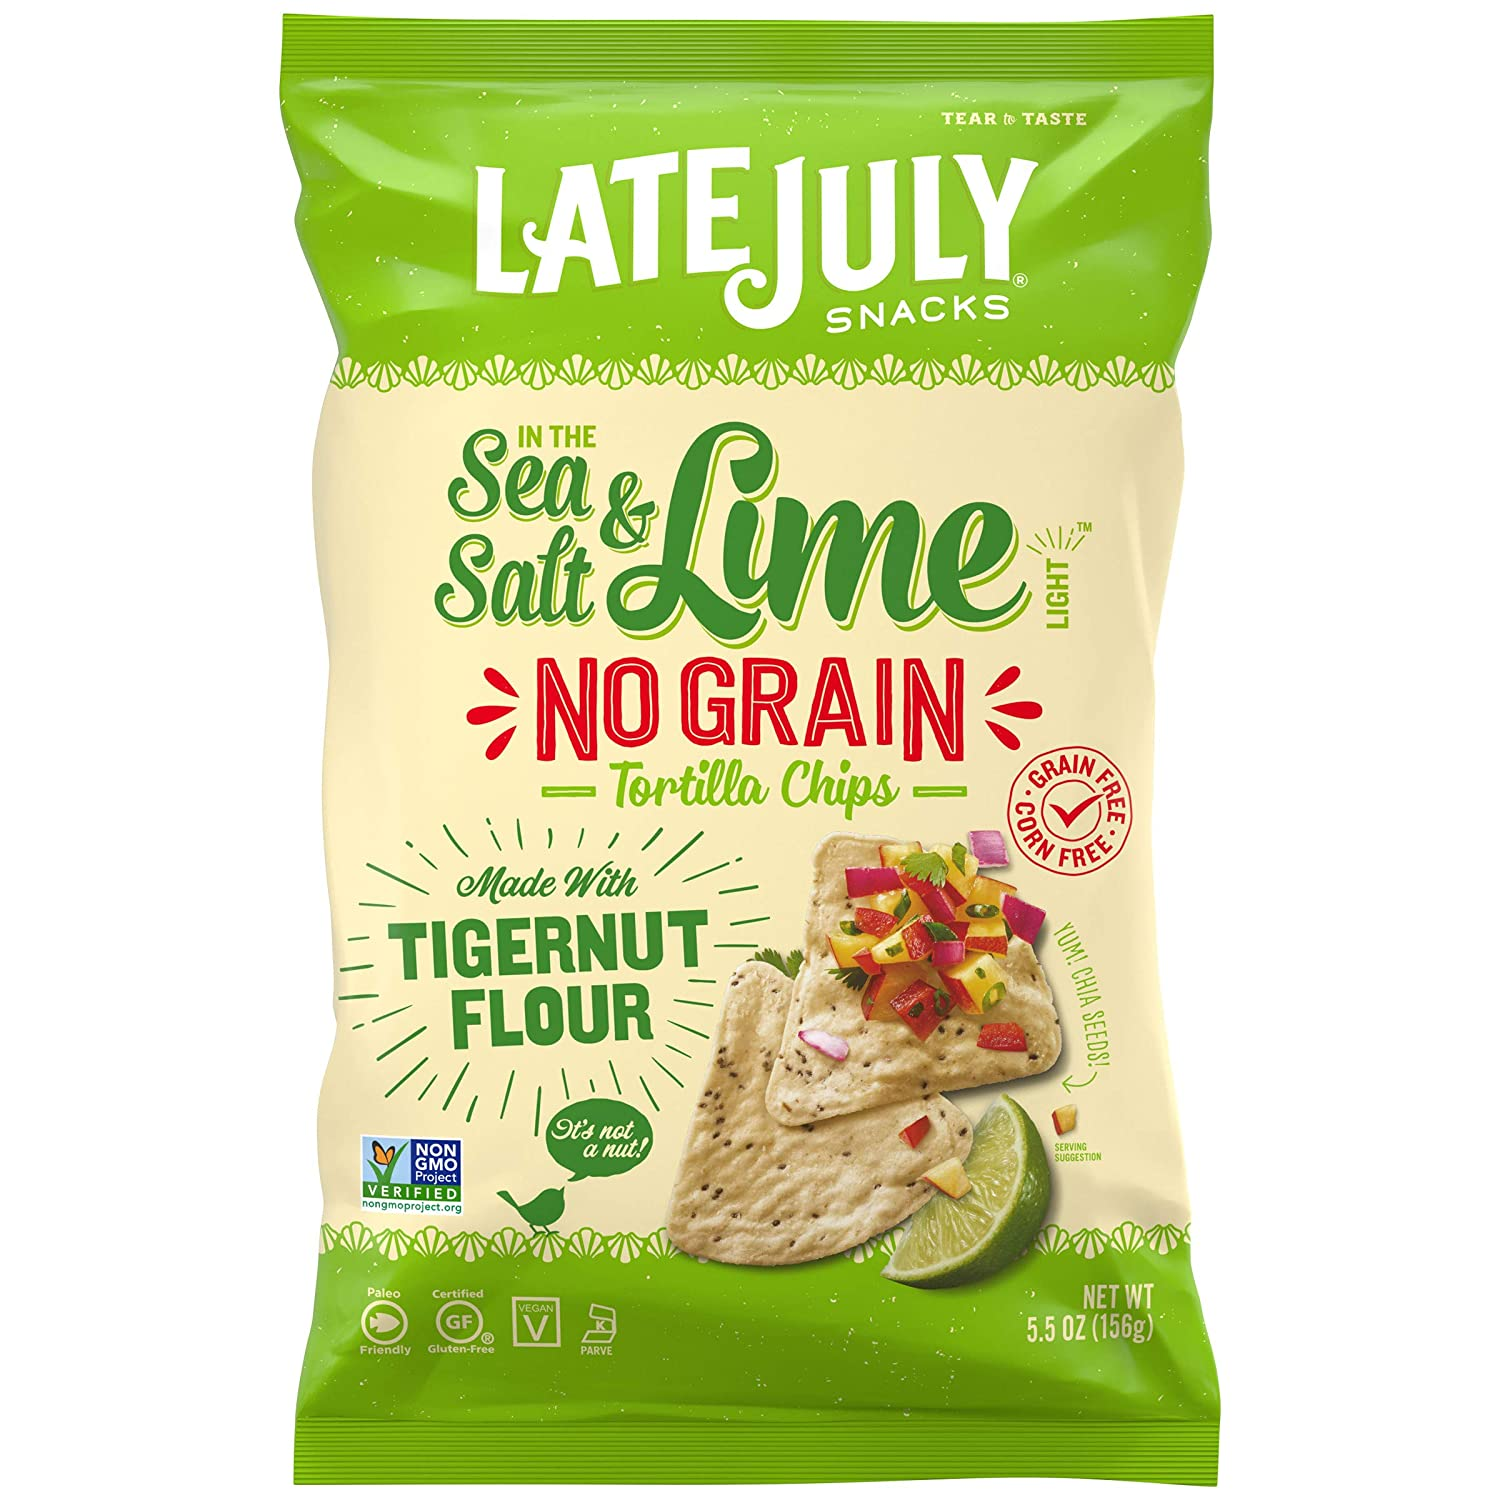 LATE JULY Snacks No Grain Tortilla Chips Sea Salt & Lime Chips, 5.5 Ounce Bag